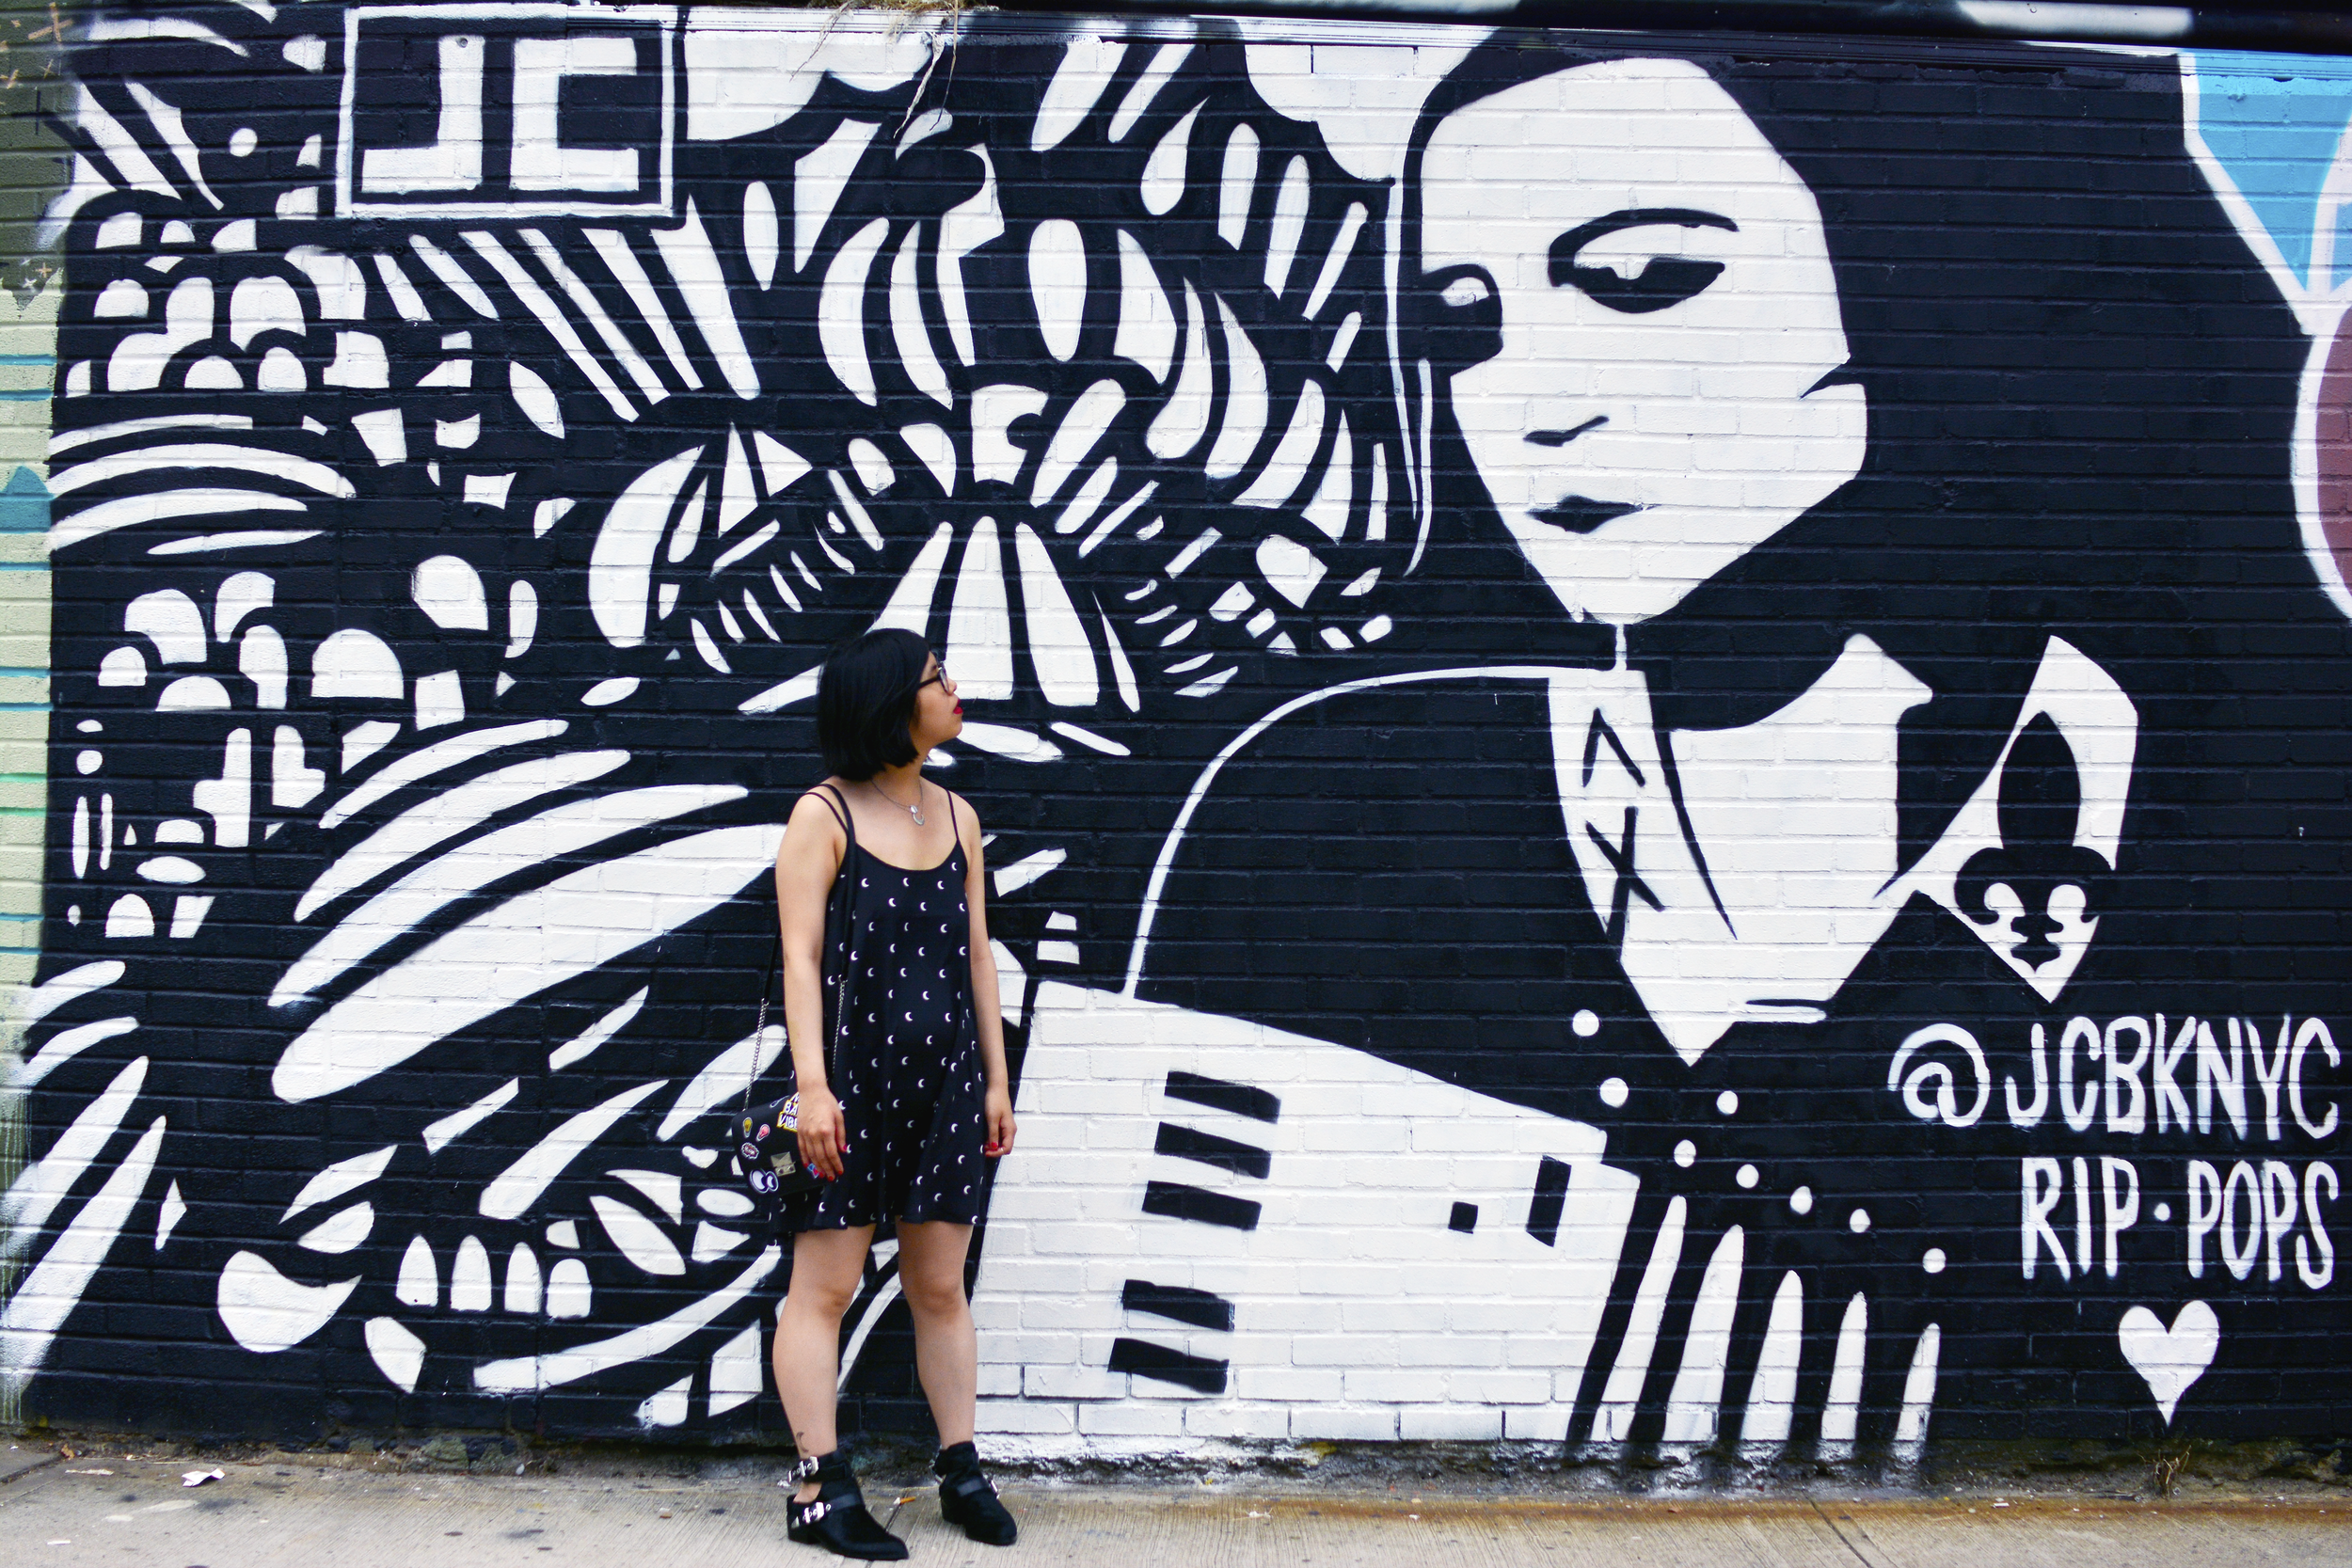 Exploring the Welling Court Mural Project 2016 in Queens, NYC. Discovering beautiful and powerful graffiti art in moon print dress.